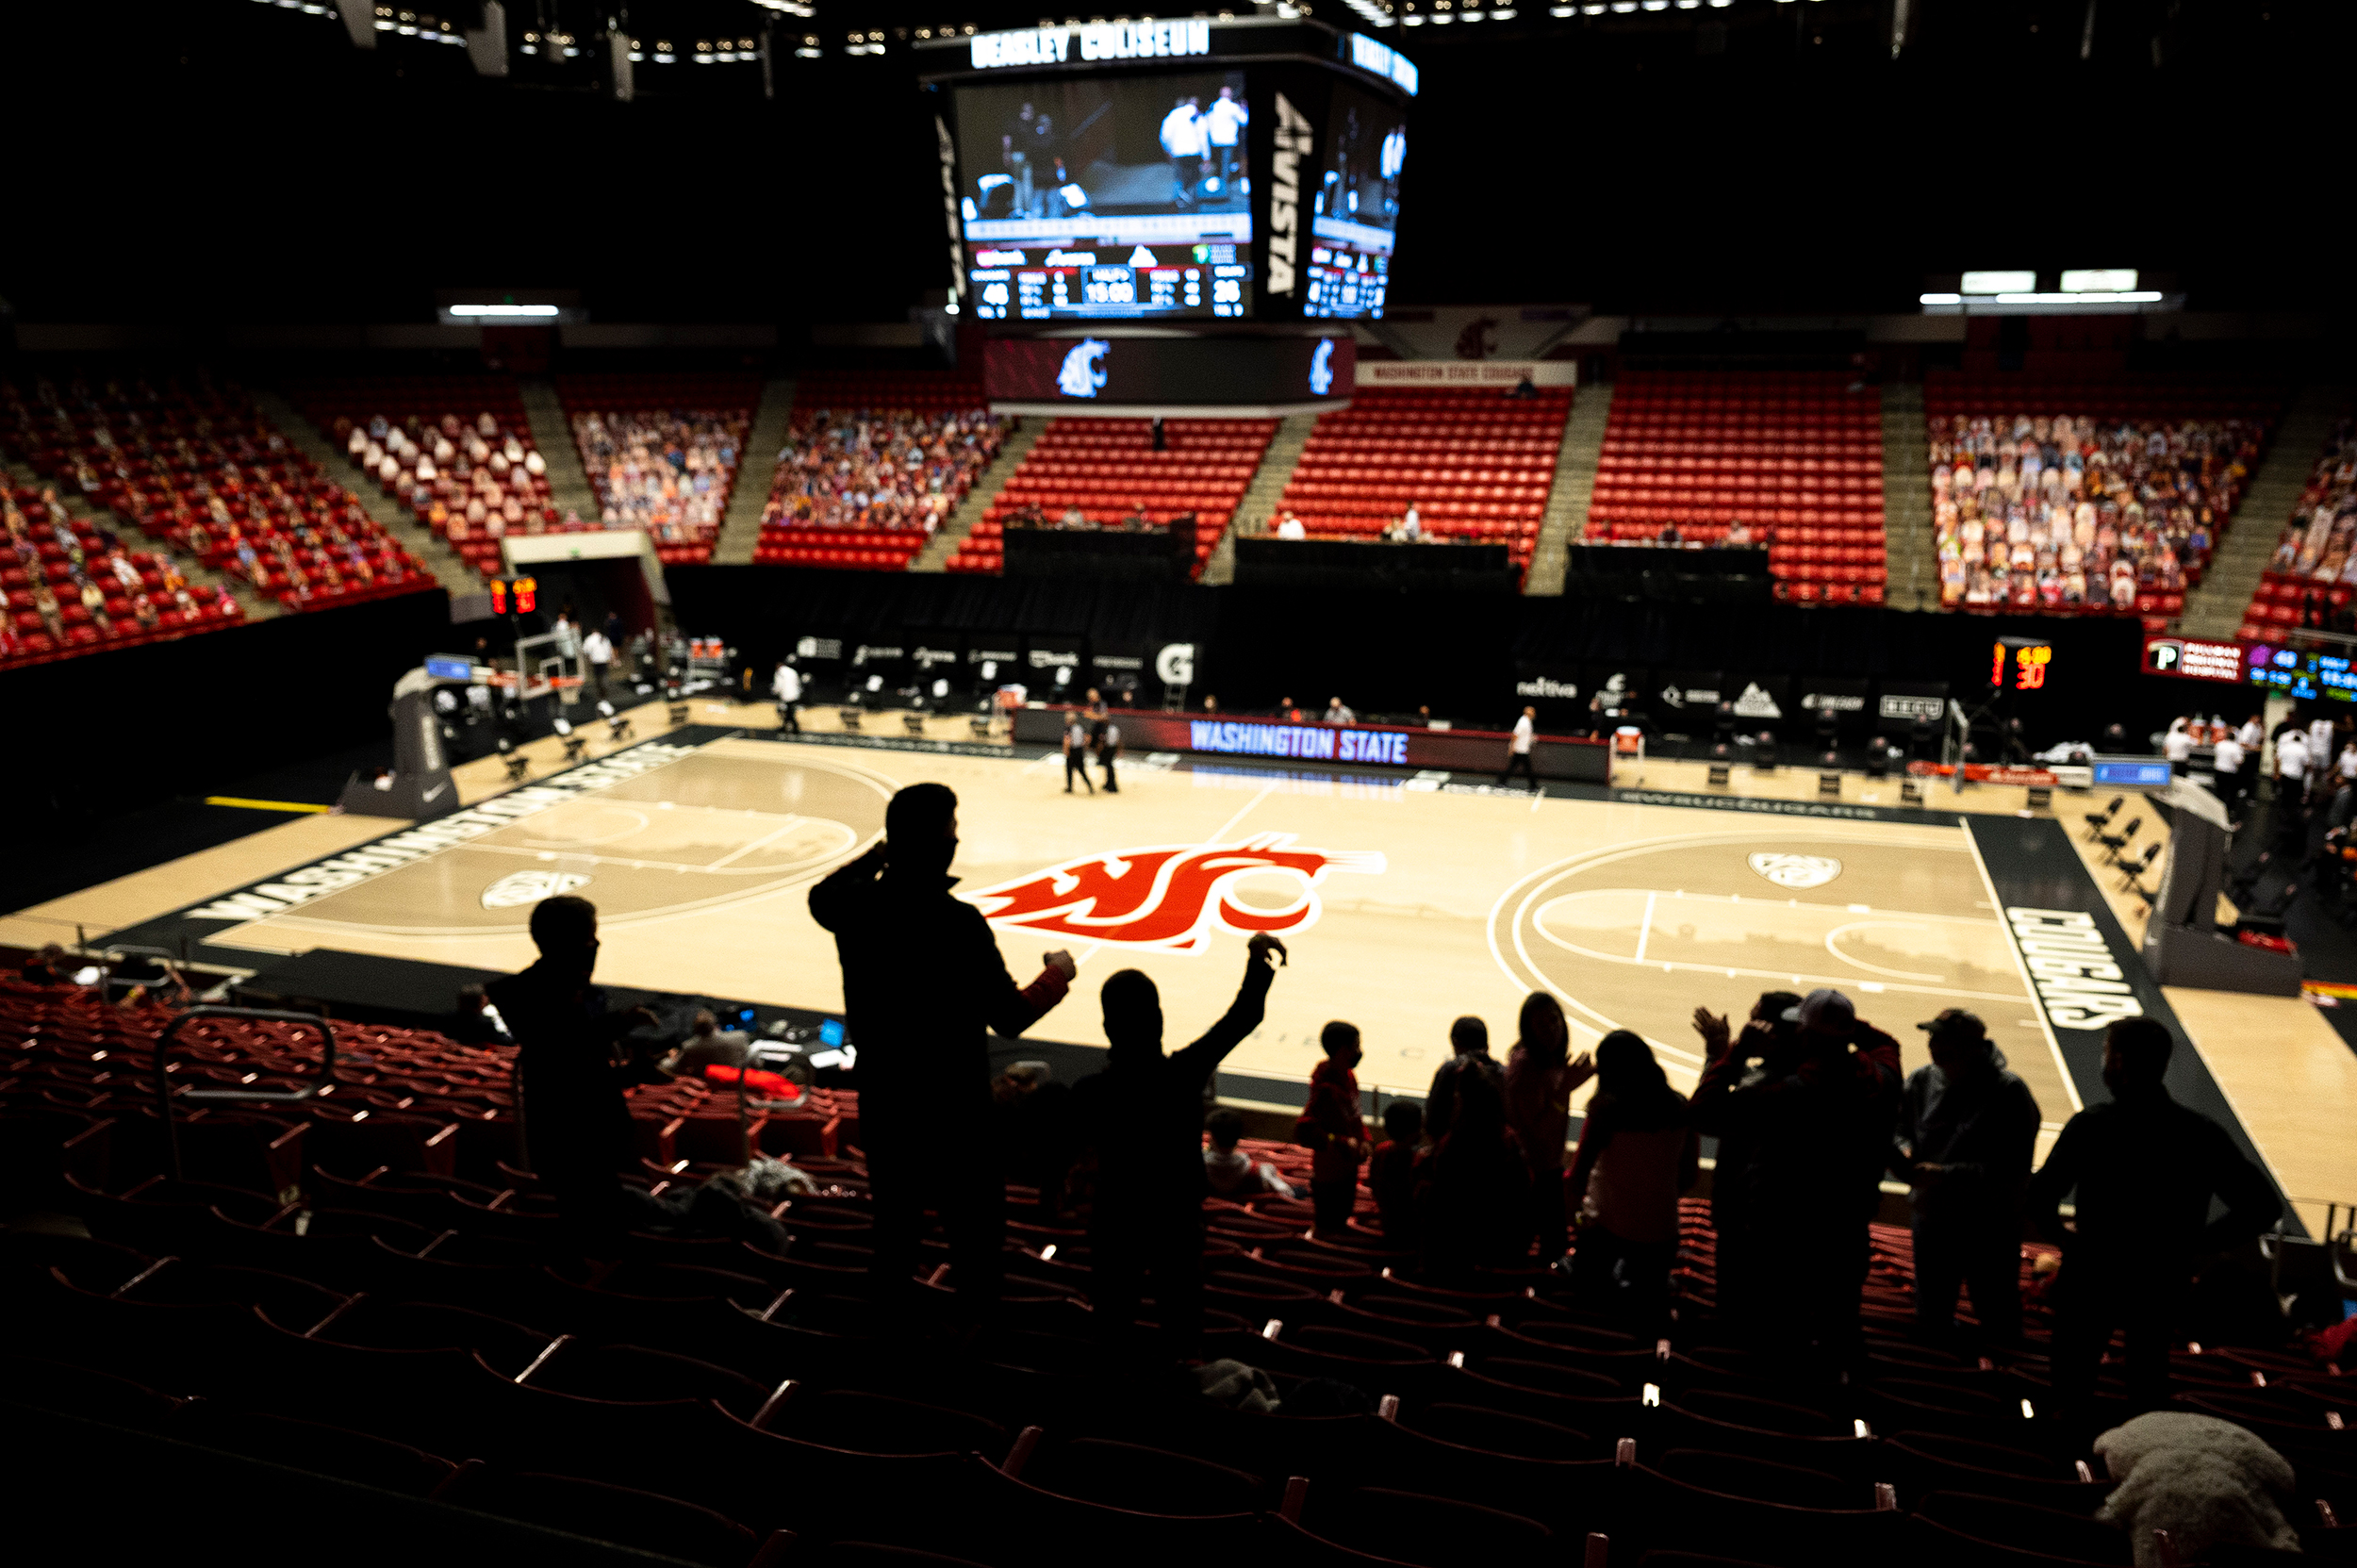 NCAA will allow up to 25% capacity at all rounds of the men's basketball tournament